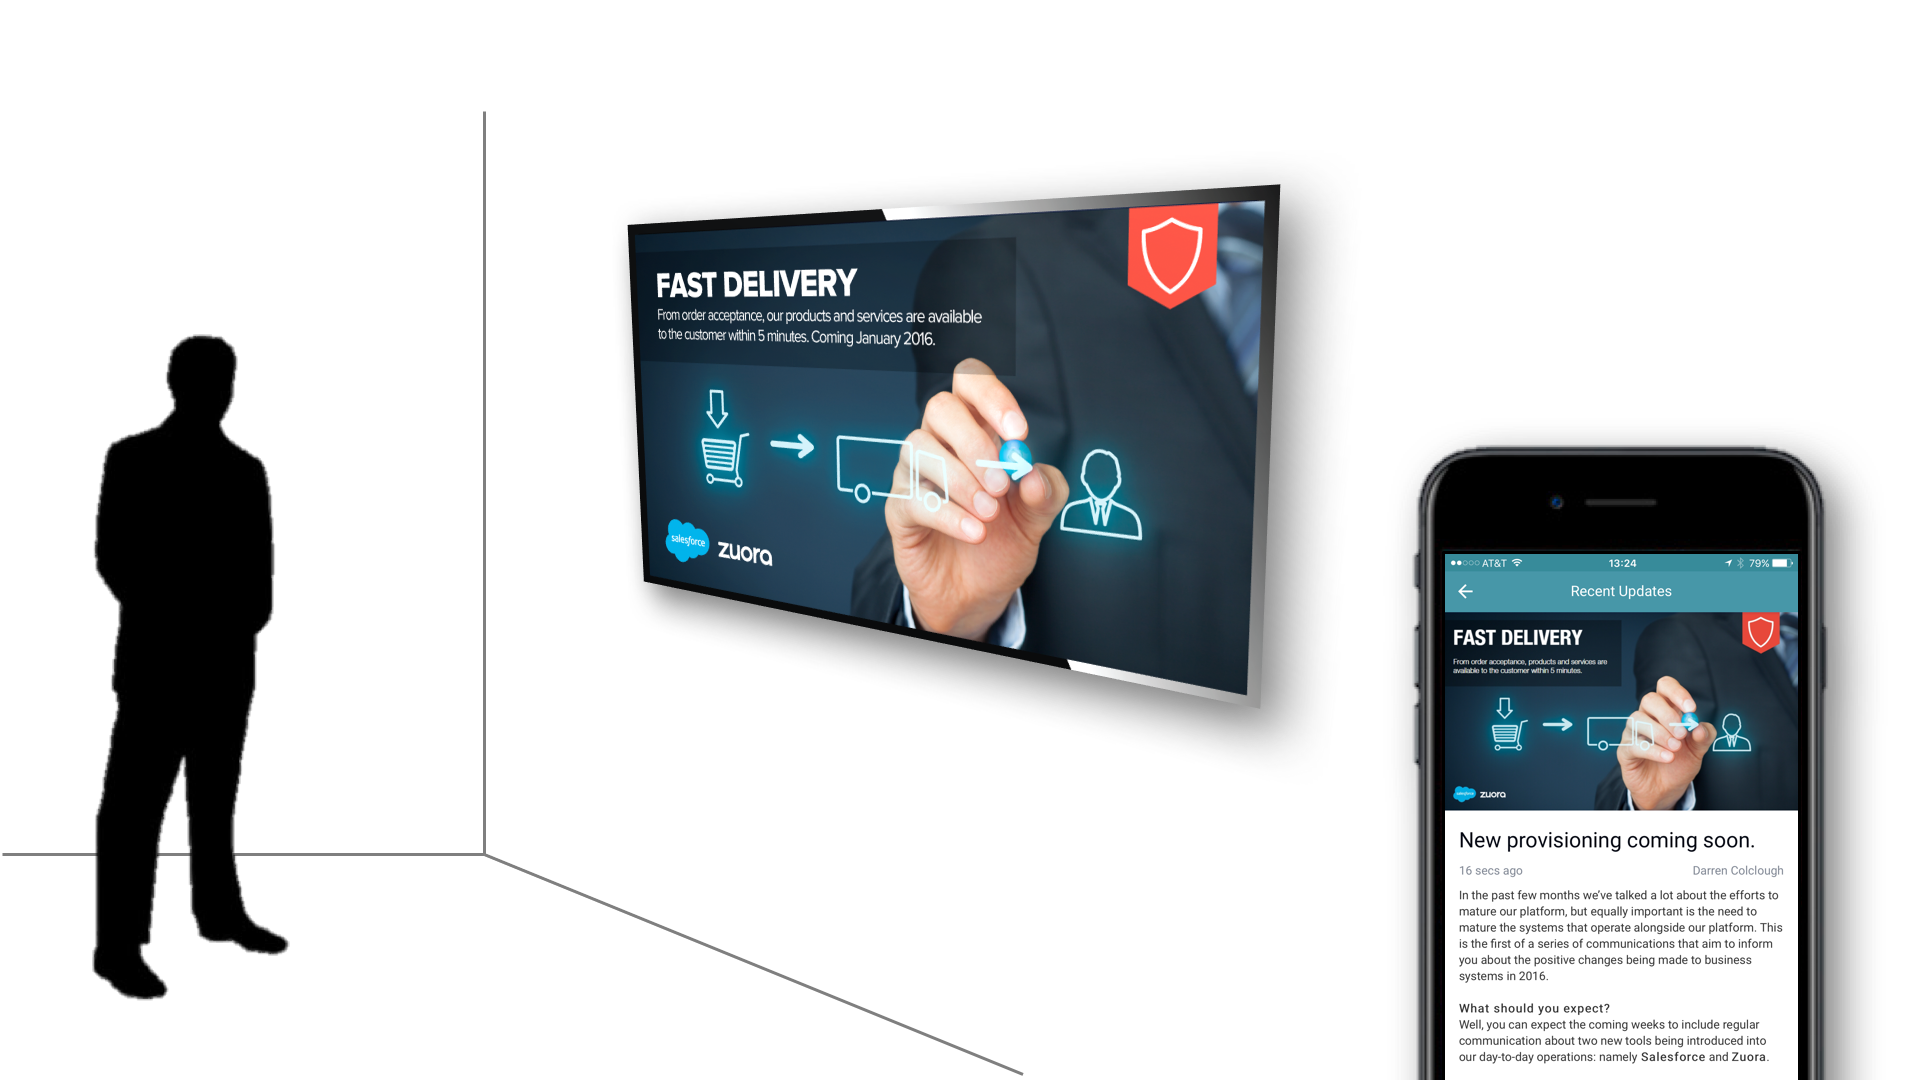 workforce communications appspace mobile digital signage